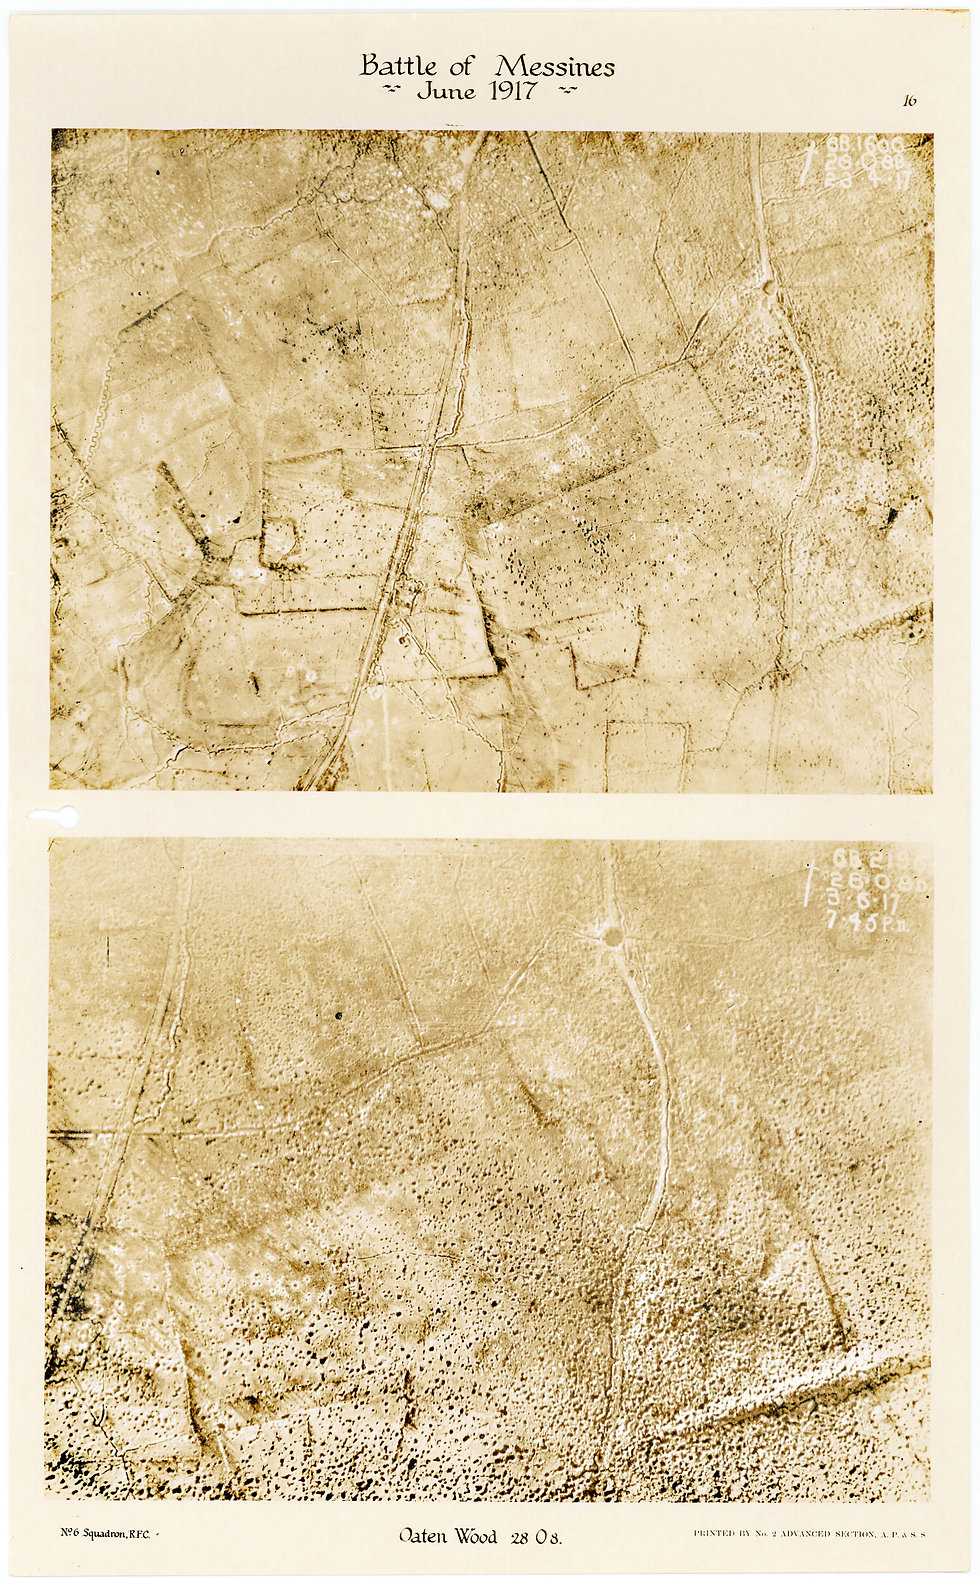 6 Squadron aerial photos of Oaten Wood, taken by 6 Squadron before and after the pre-bombardment at the Battle of Messines, 1917